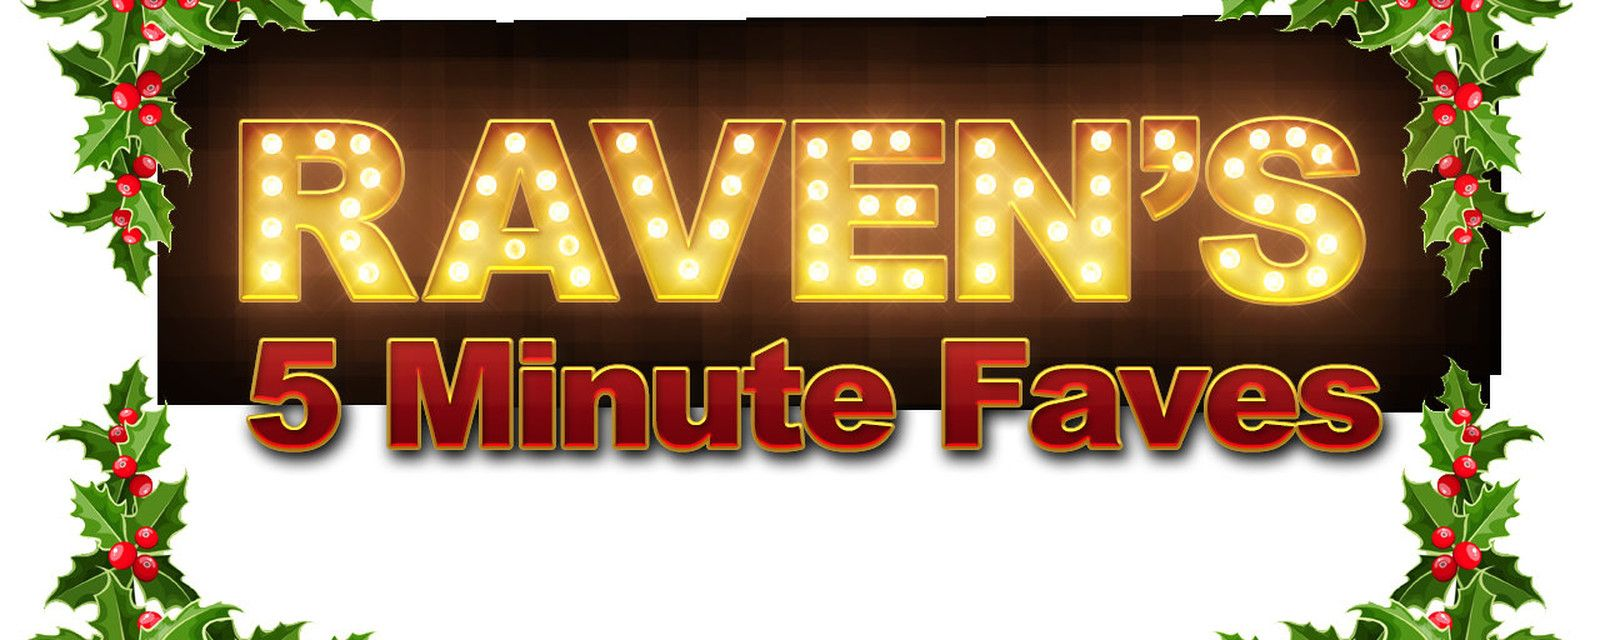 Raven Symone Shares Her Five Minute Faves On The View The View The View Recipes Chocolate Drink Recipes Fun Drinks